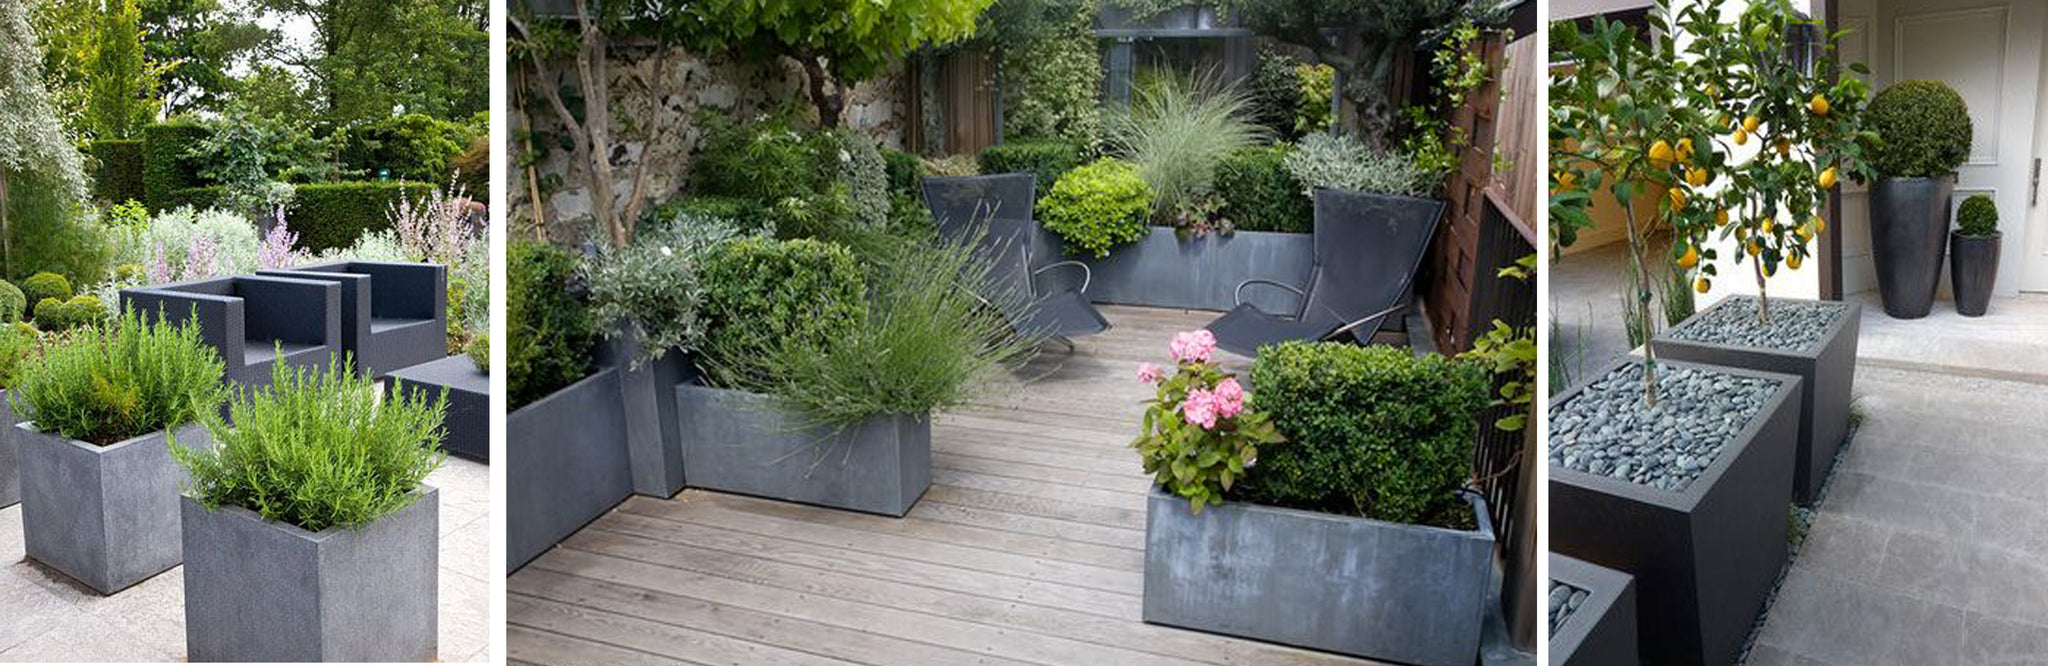 outdoor planters dividers